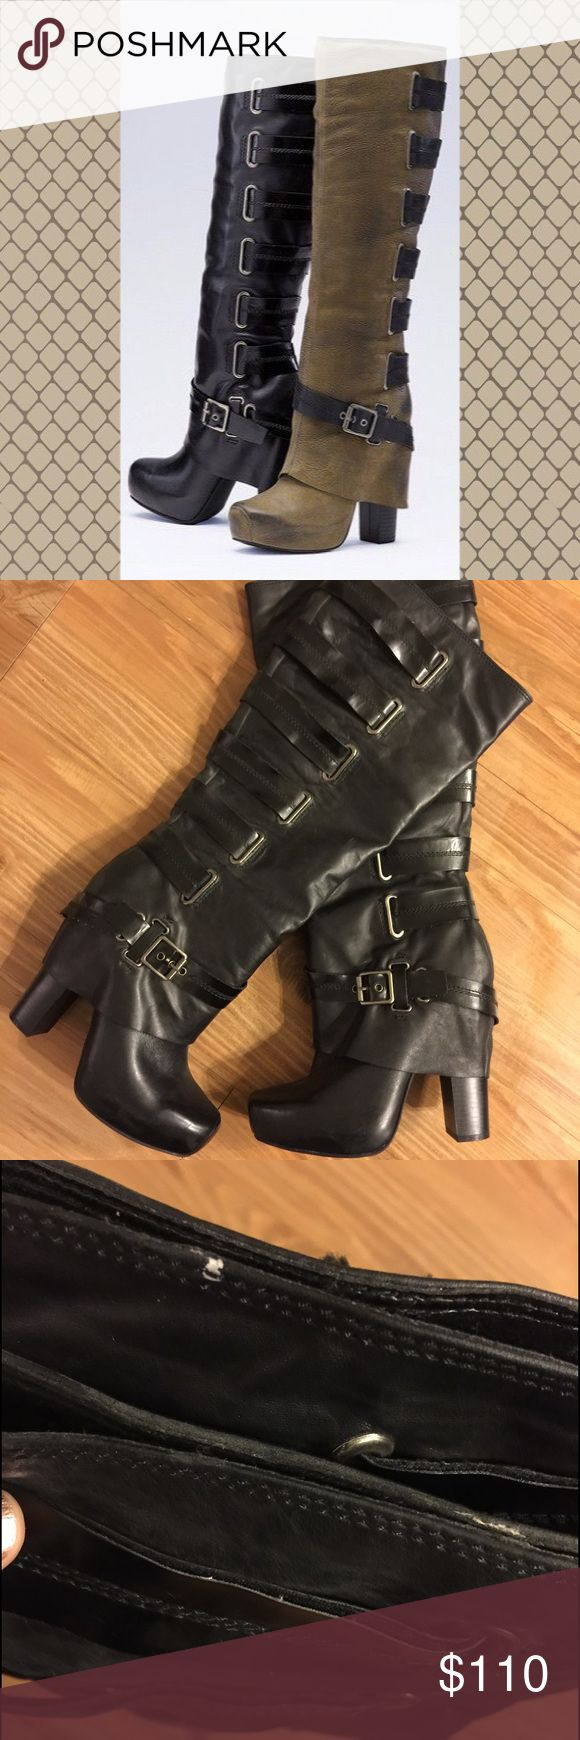 Jessica Simpson Boots Size 9 fits like an 8. Worn twice. Two little Knicks at very top of boot, see picture. Otherwise pretty close to perfect. Six inch heel. Jessica Simpson Shoes